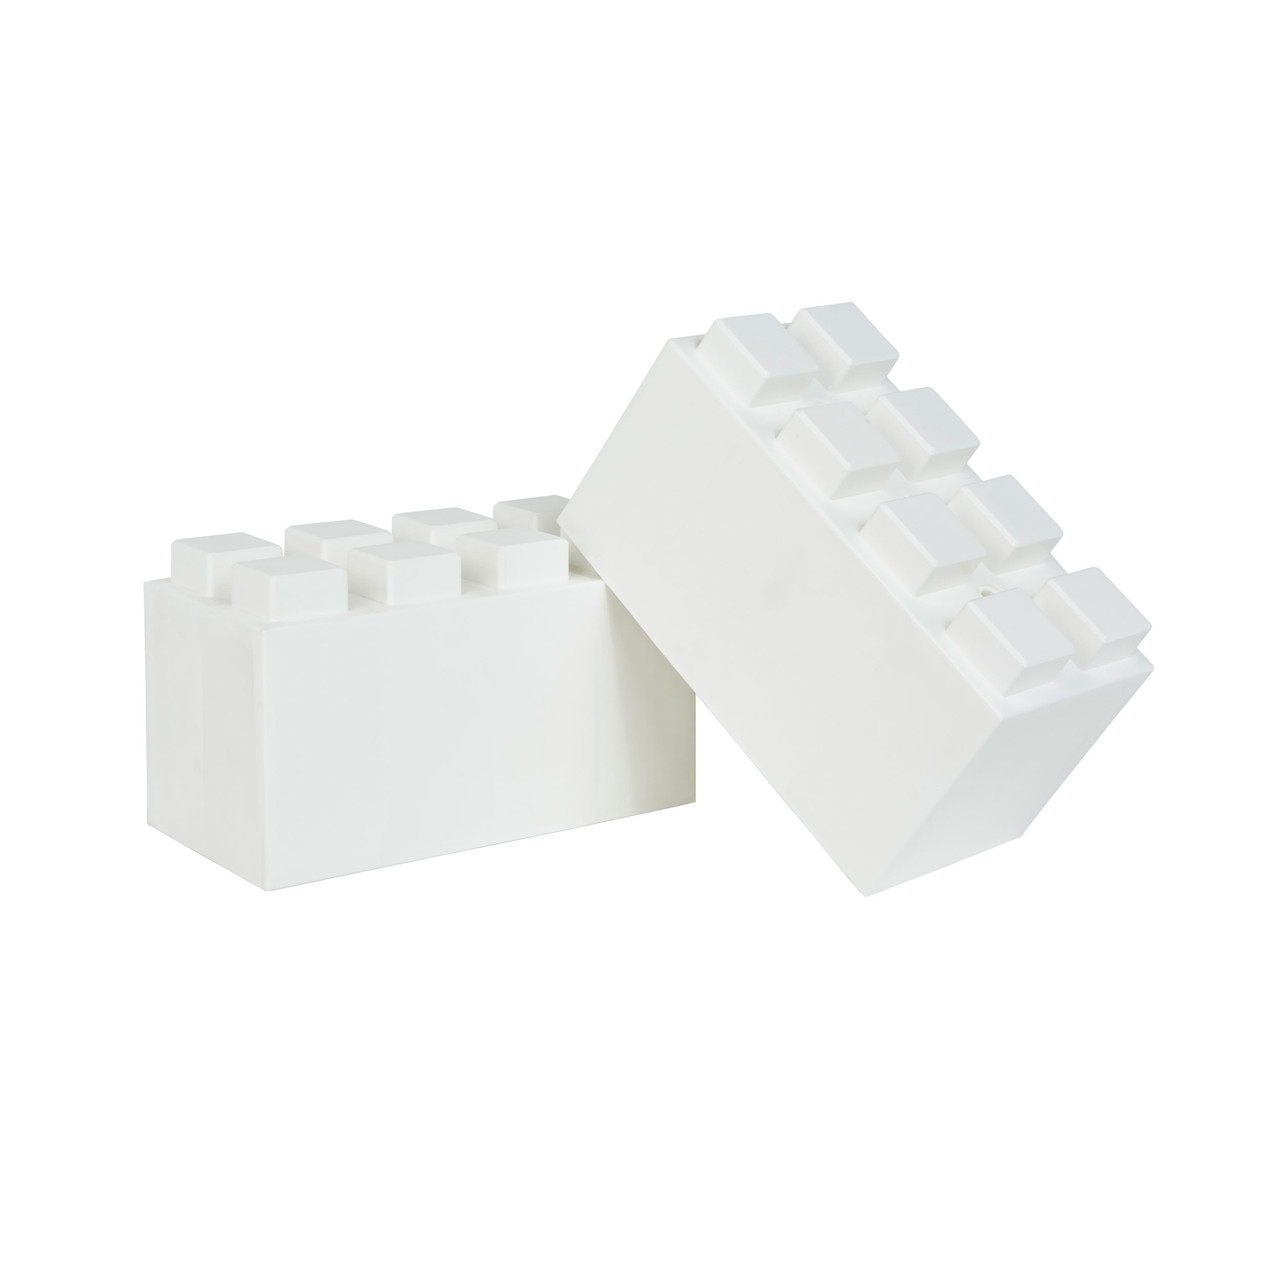 "12"" x 6"" Full Block Bulk Pack - 18 Blocks"